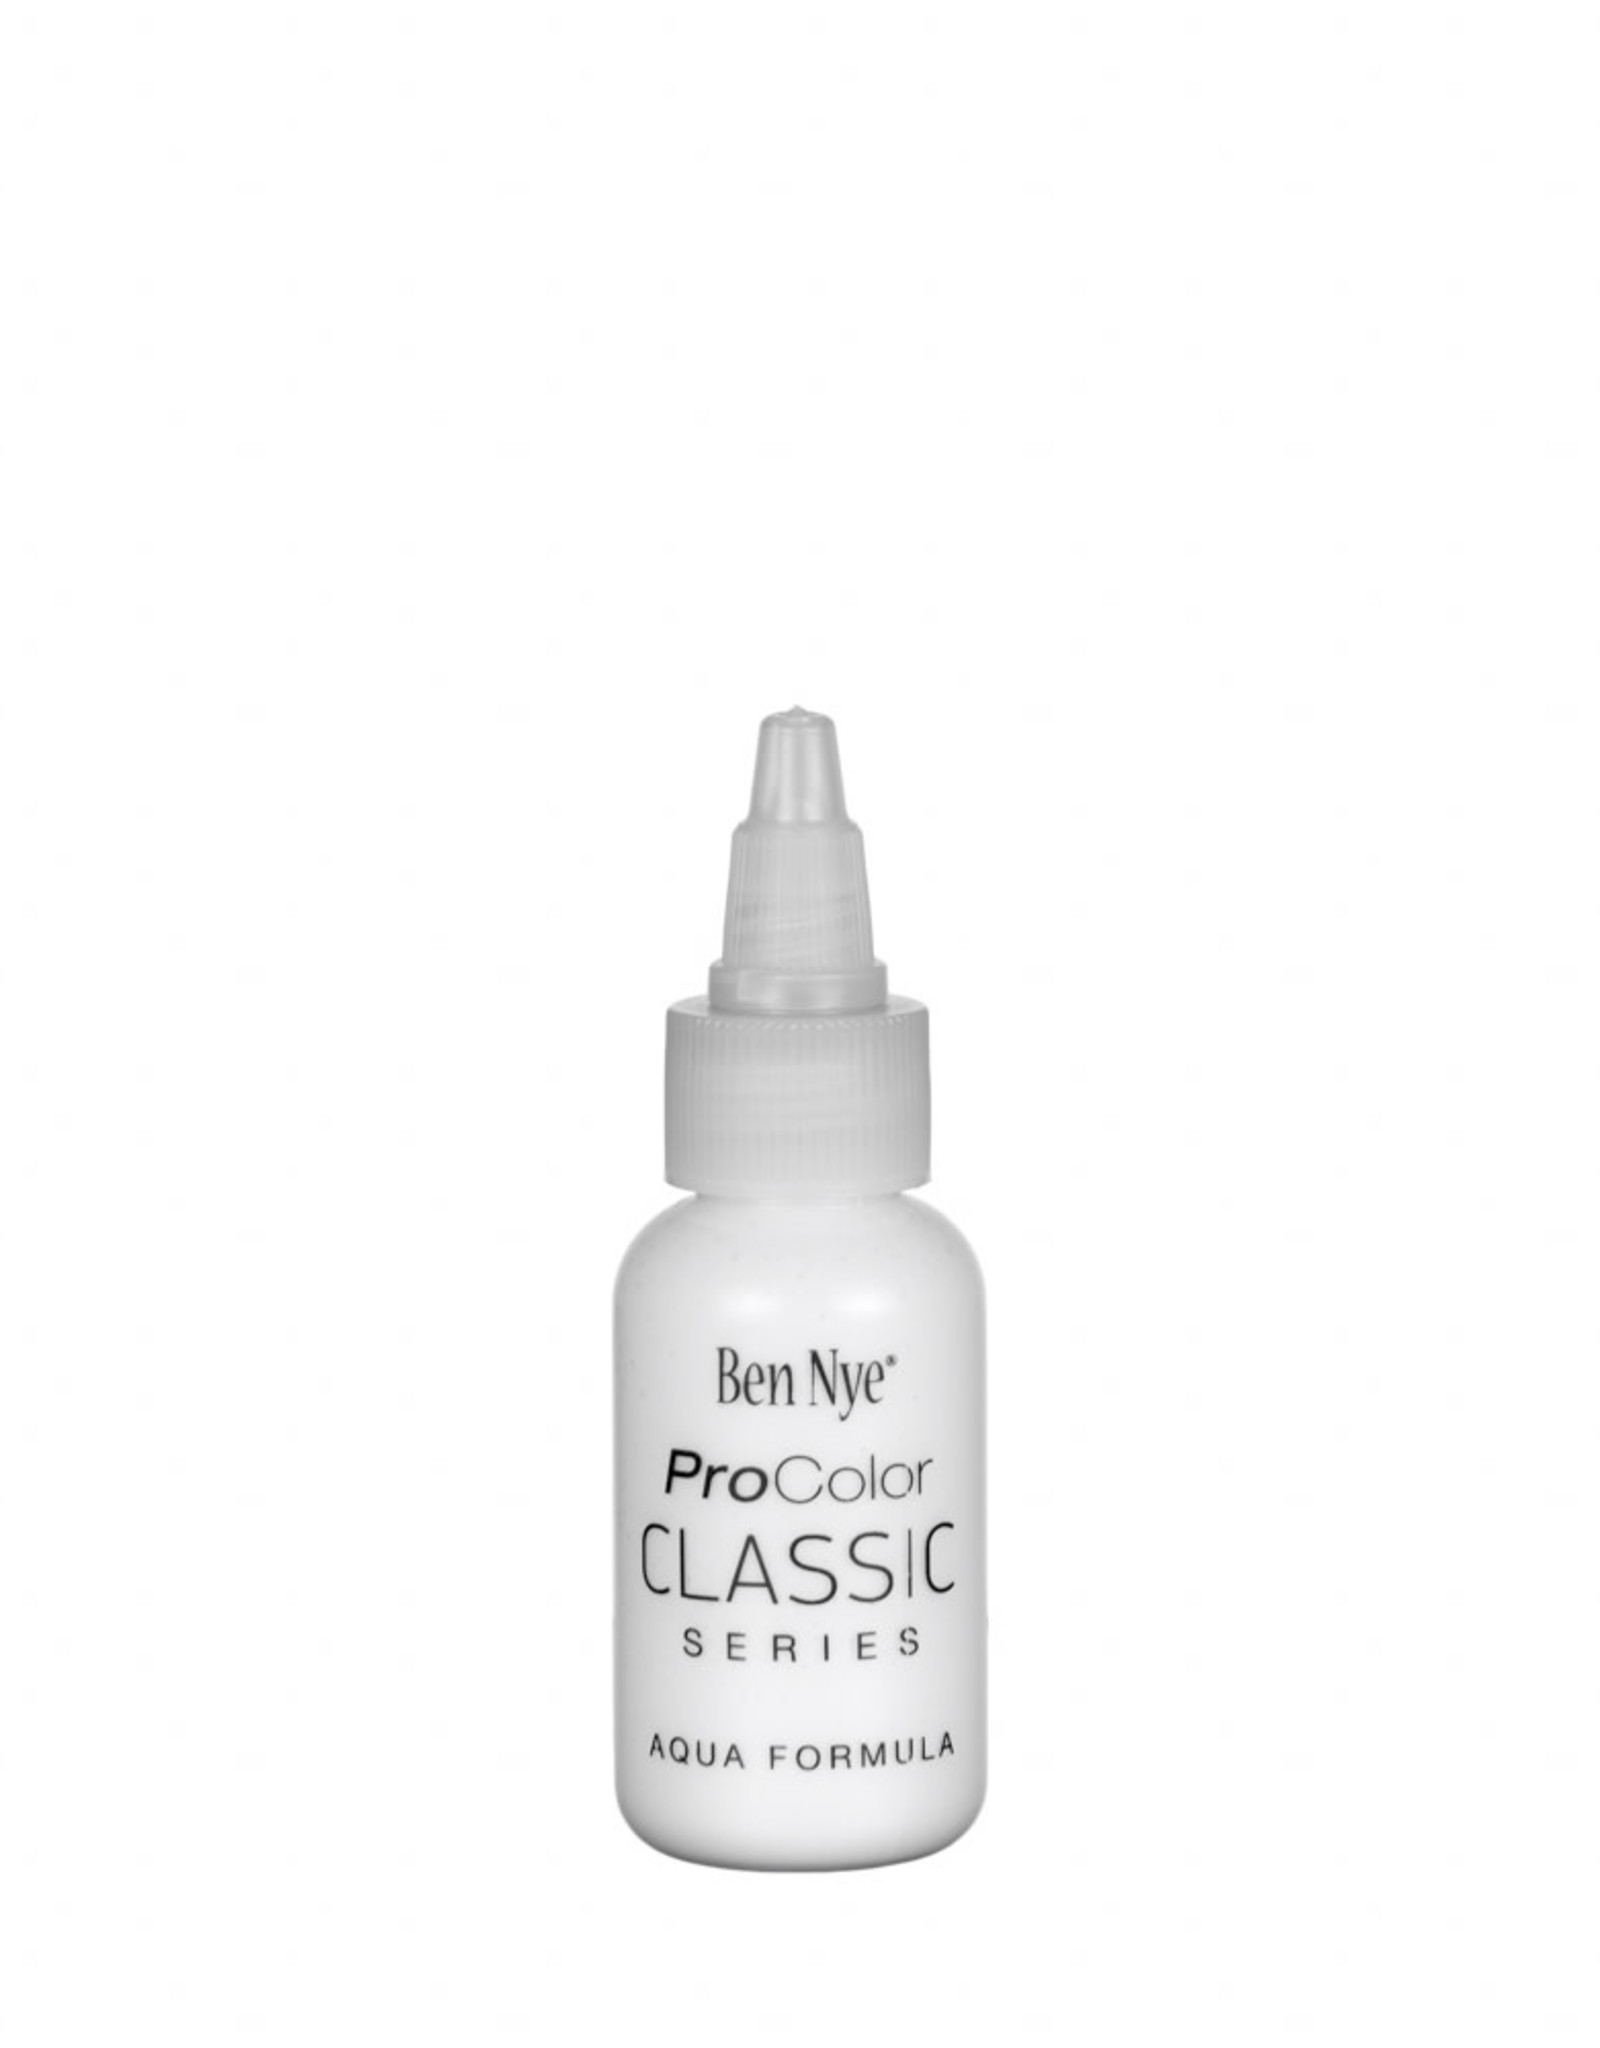 Ben Nye PROCOLOR AIRBRUSH PAINT-CLASSIC, WHITE, 1 OZ